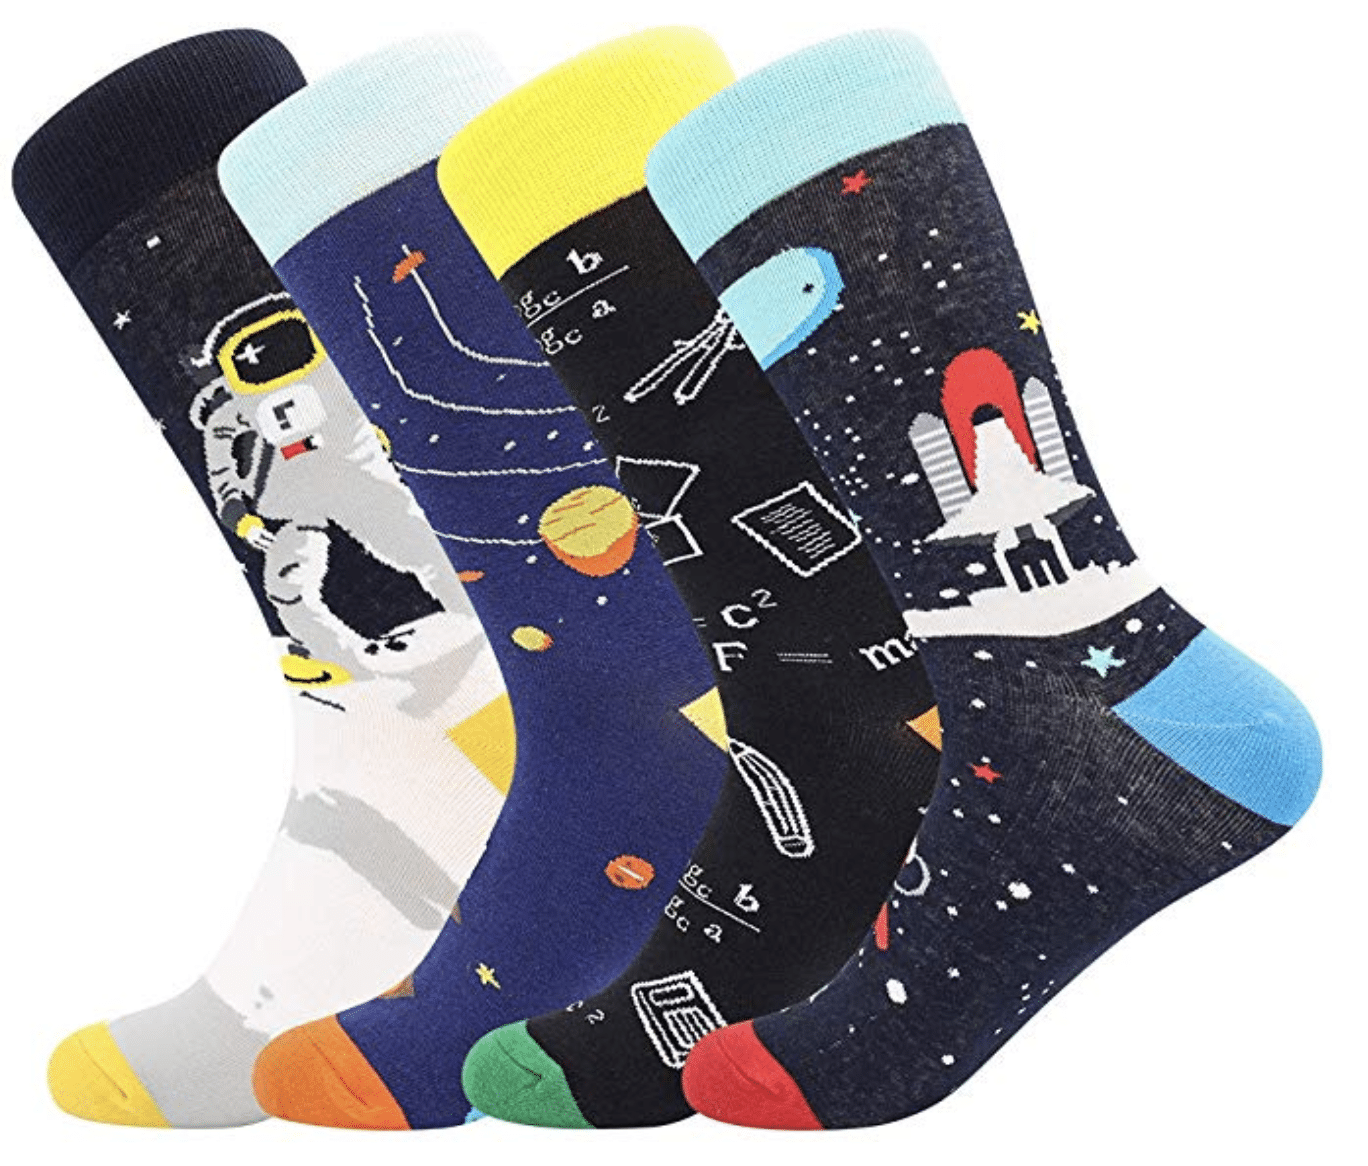 space-gifts-socks